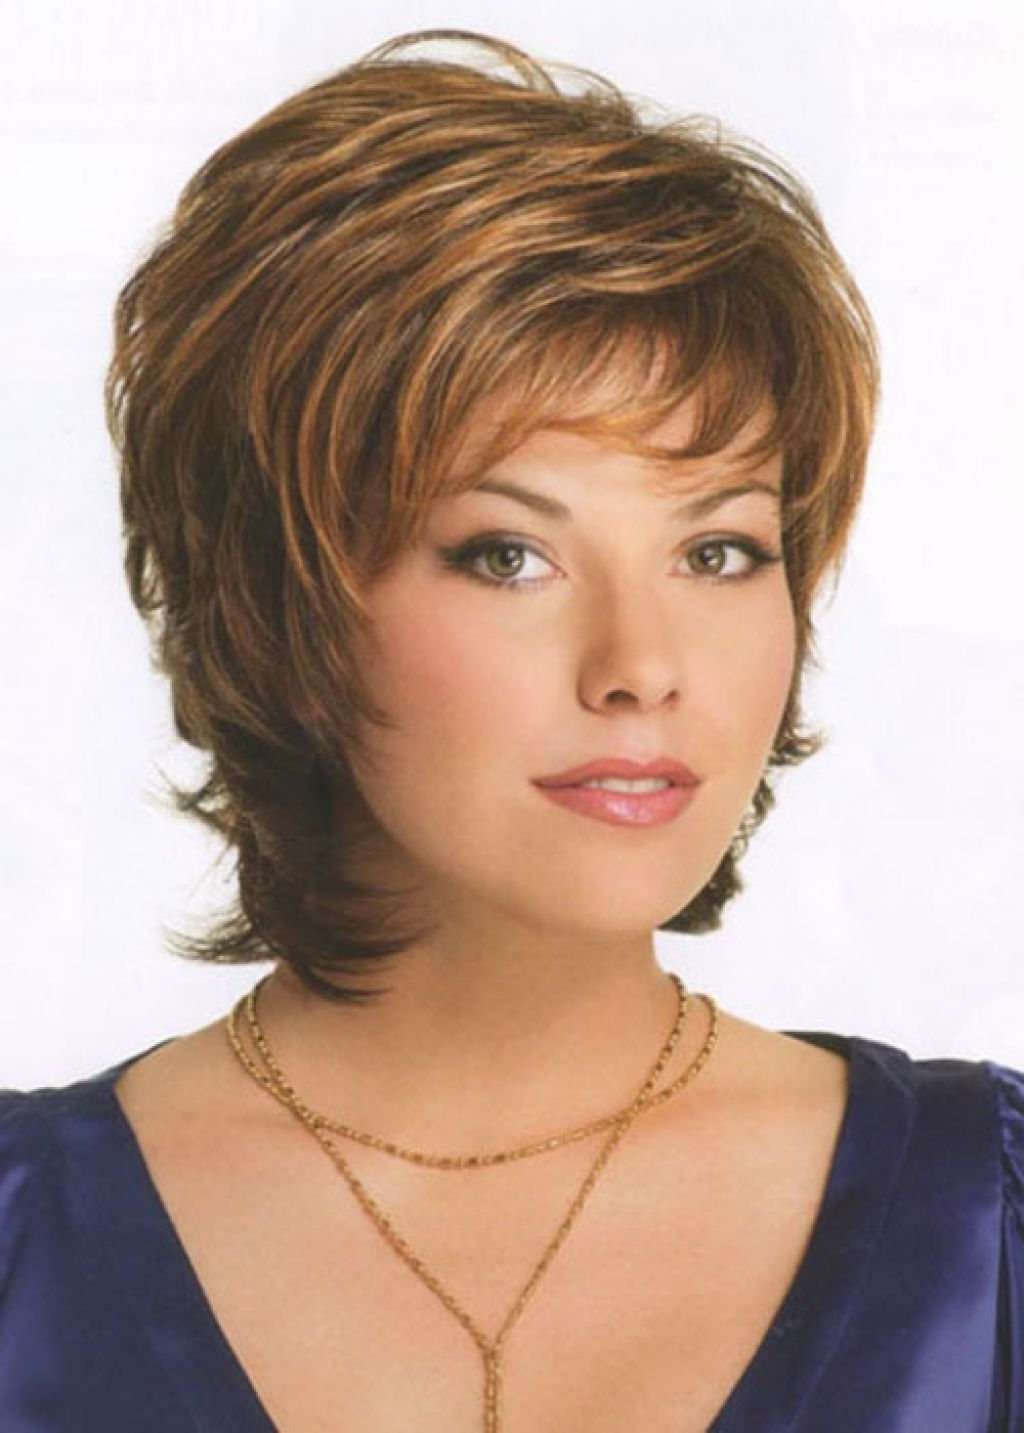 Current Shaggy Hairstyles For Short Hair Pertaining To Best Medium Shaggy Haircuts Ideas On Pinterest Bob Shag For Easy (View 9 of 15)